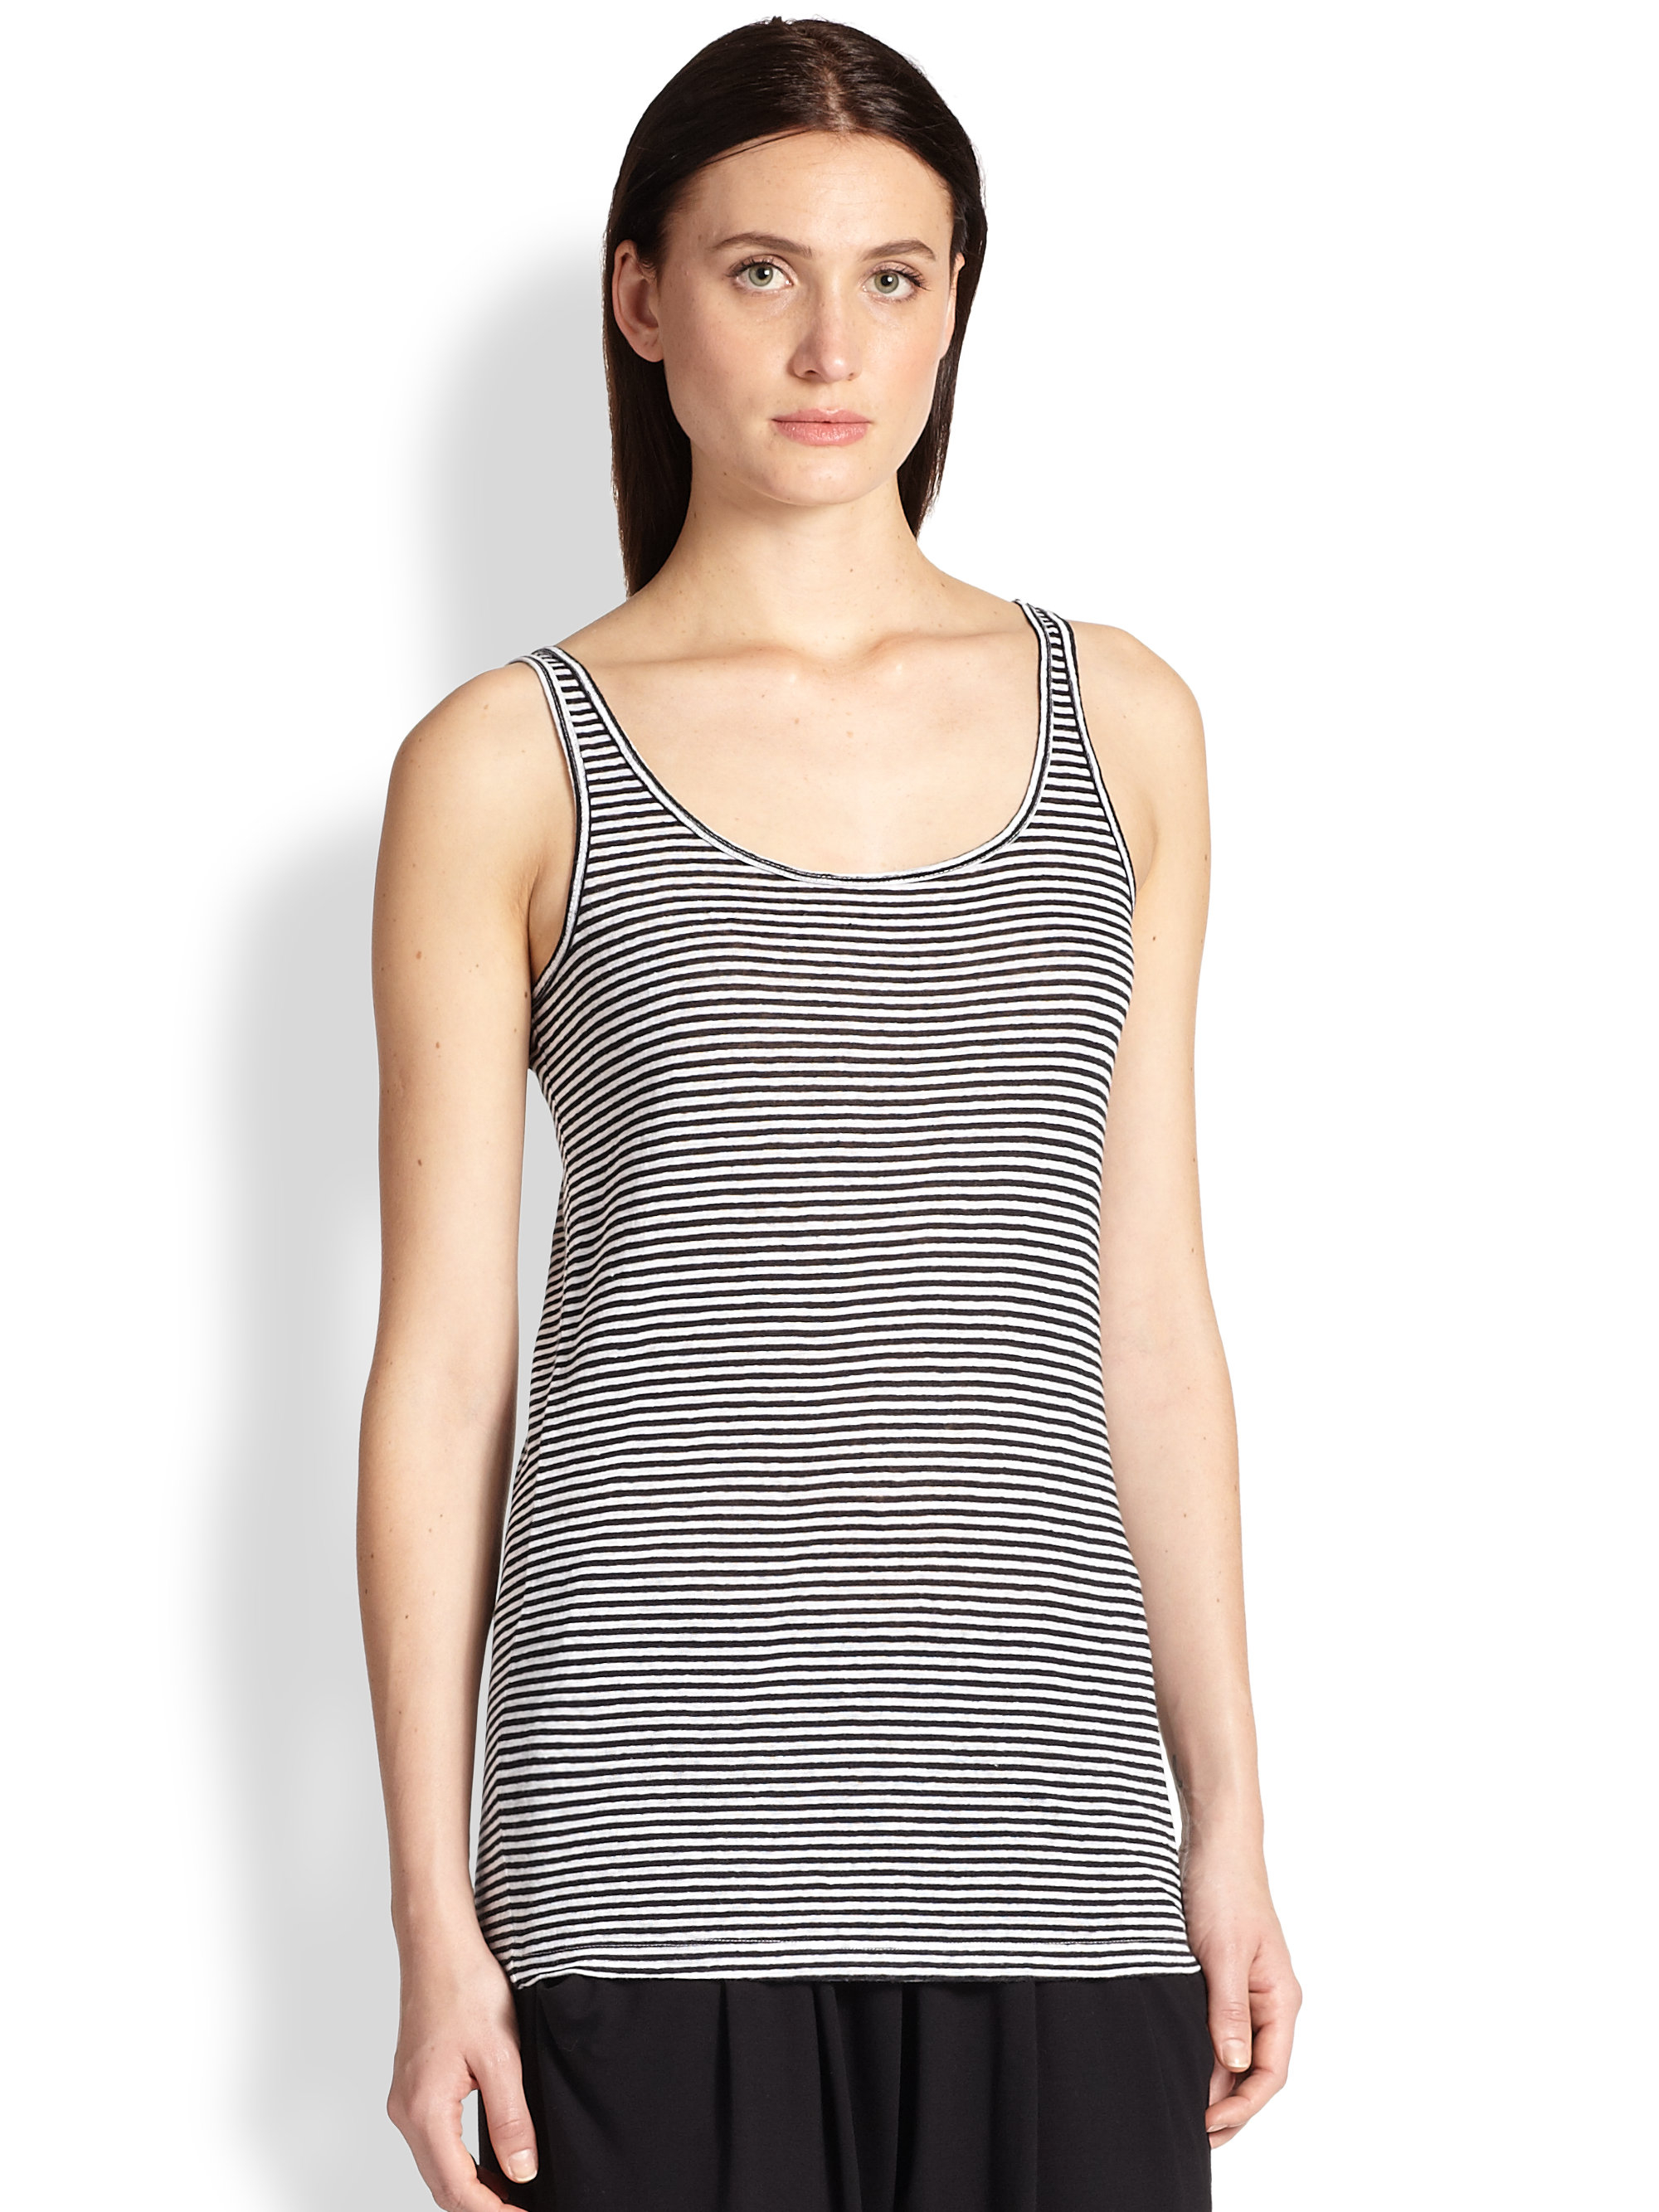 dacb65c7c1f Lyst - Eileen Fisher Striped Organic Linen Tank in Black